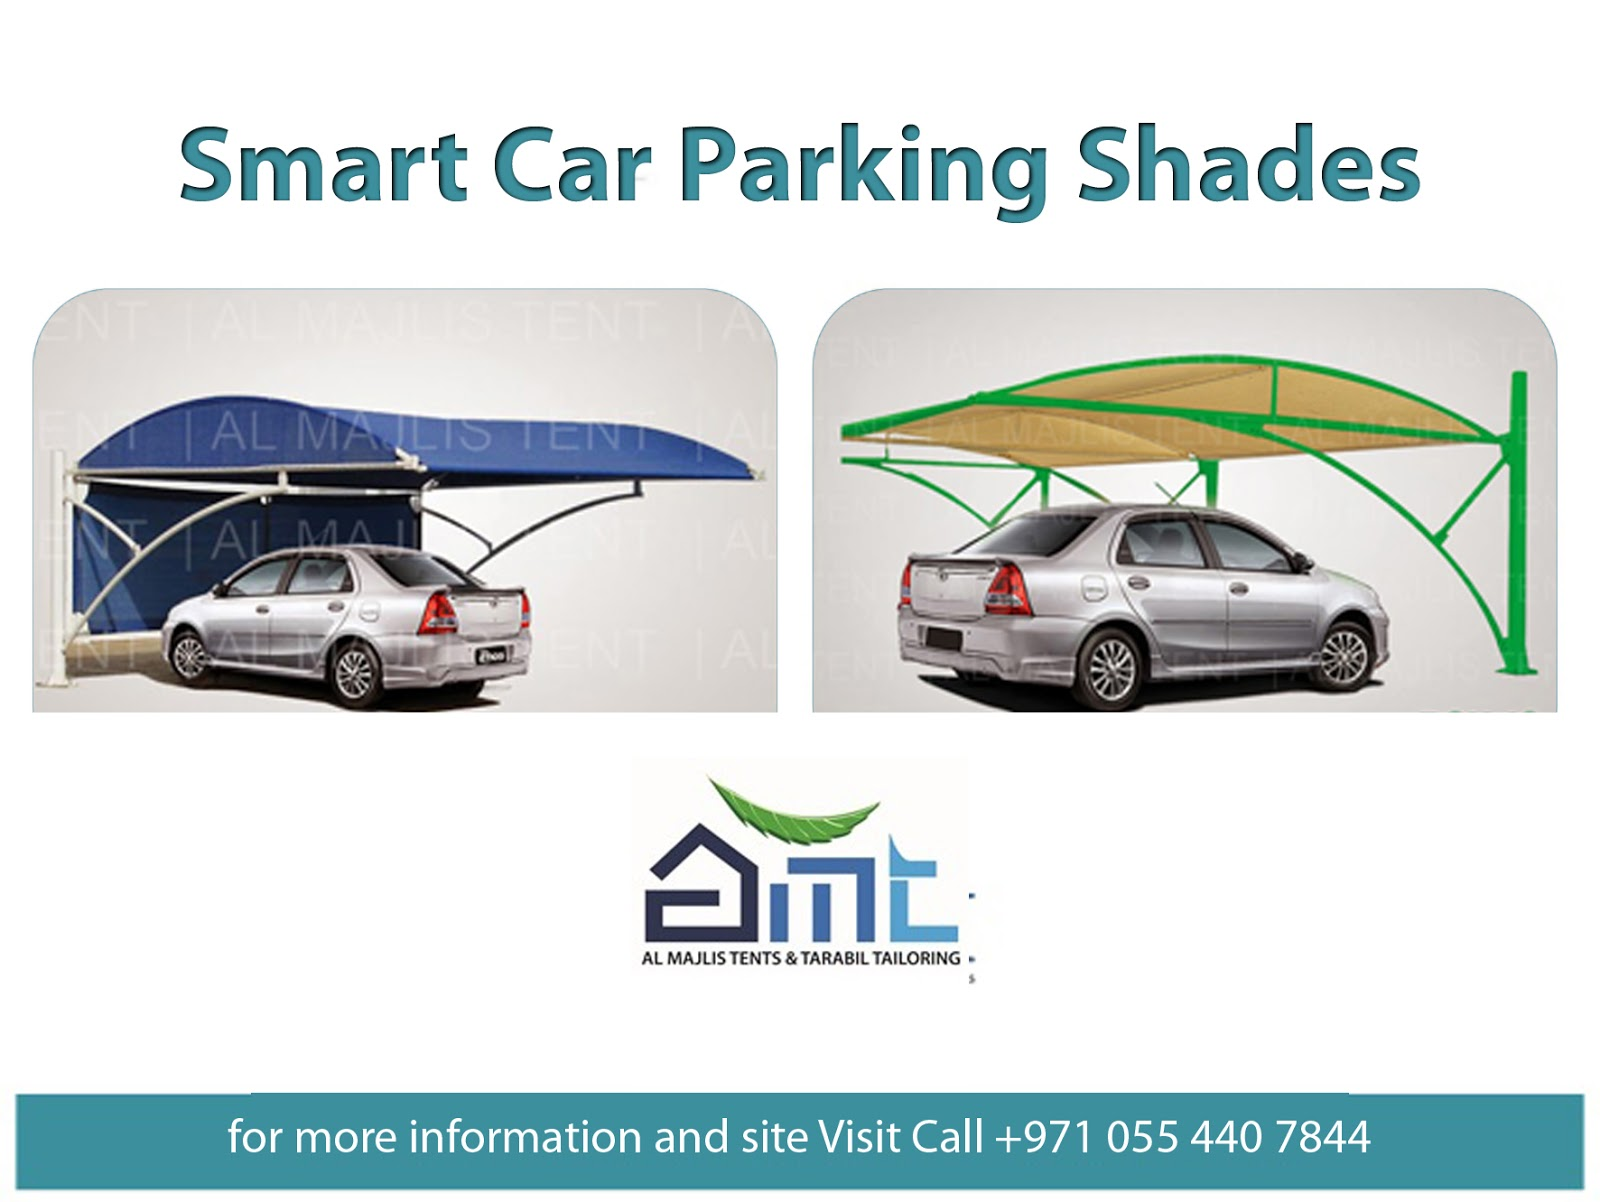 Al Majlis Tent Opt To Congruence Car Parking Shade Of Superior Quality With Good Material For Strength And Durability The Fabric Special